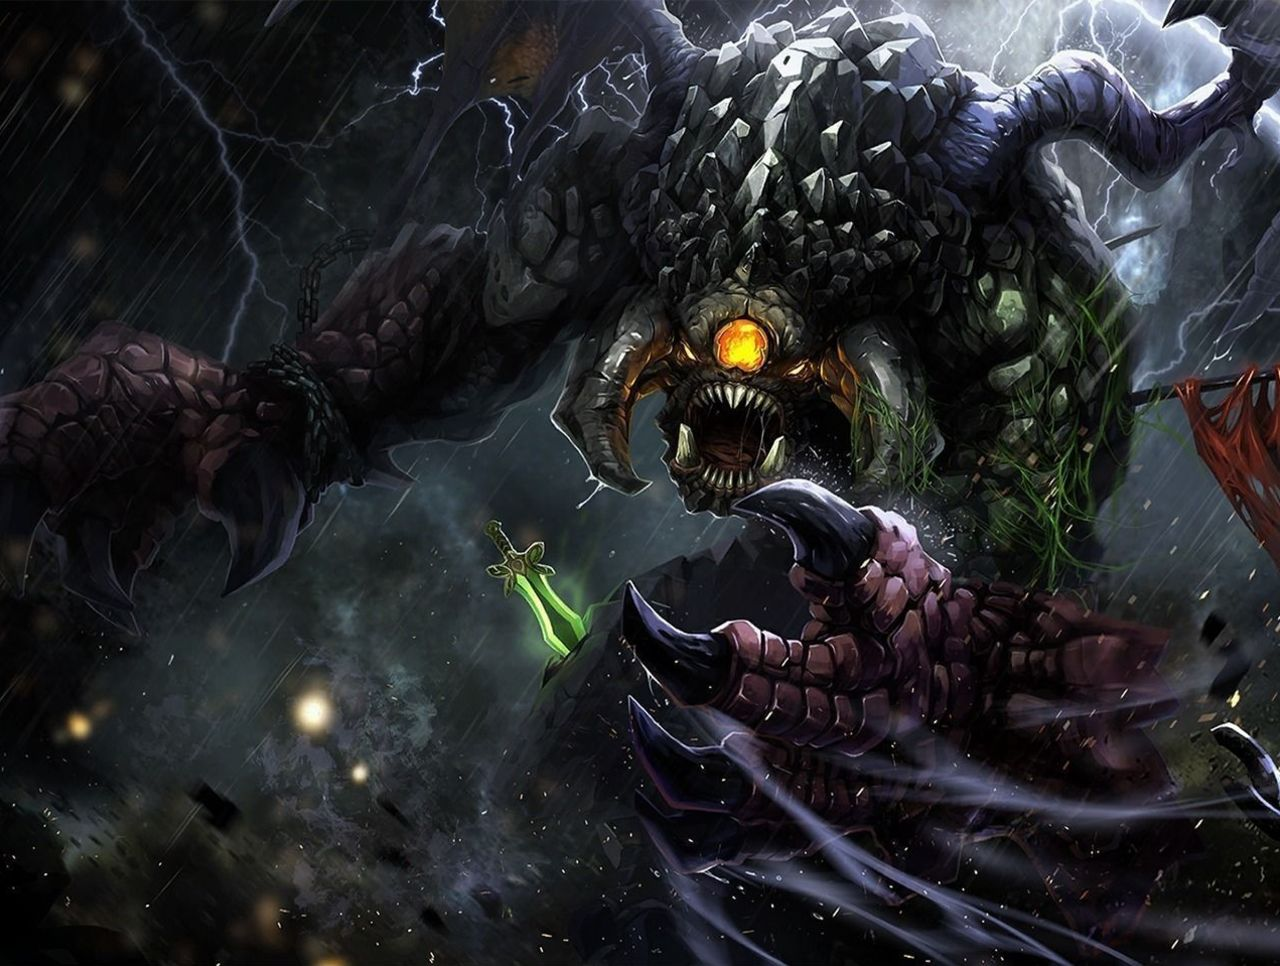 Cropped roshan s greed loading screen 4x3